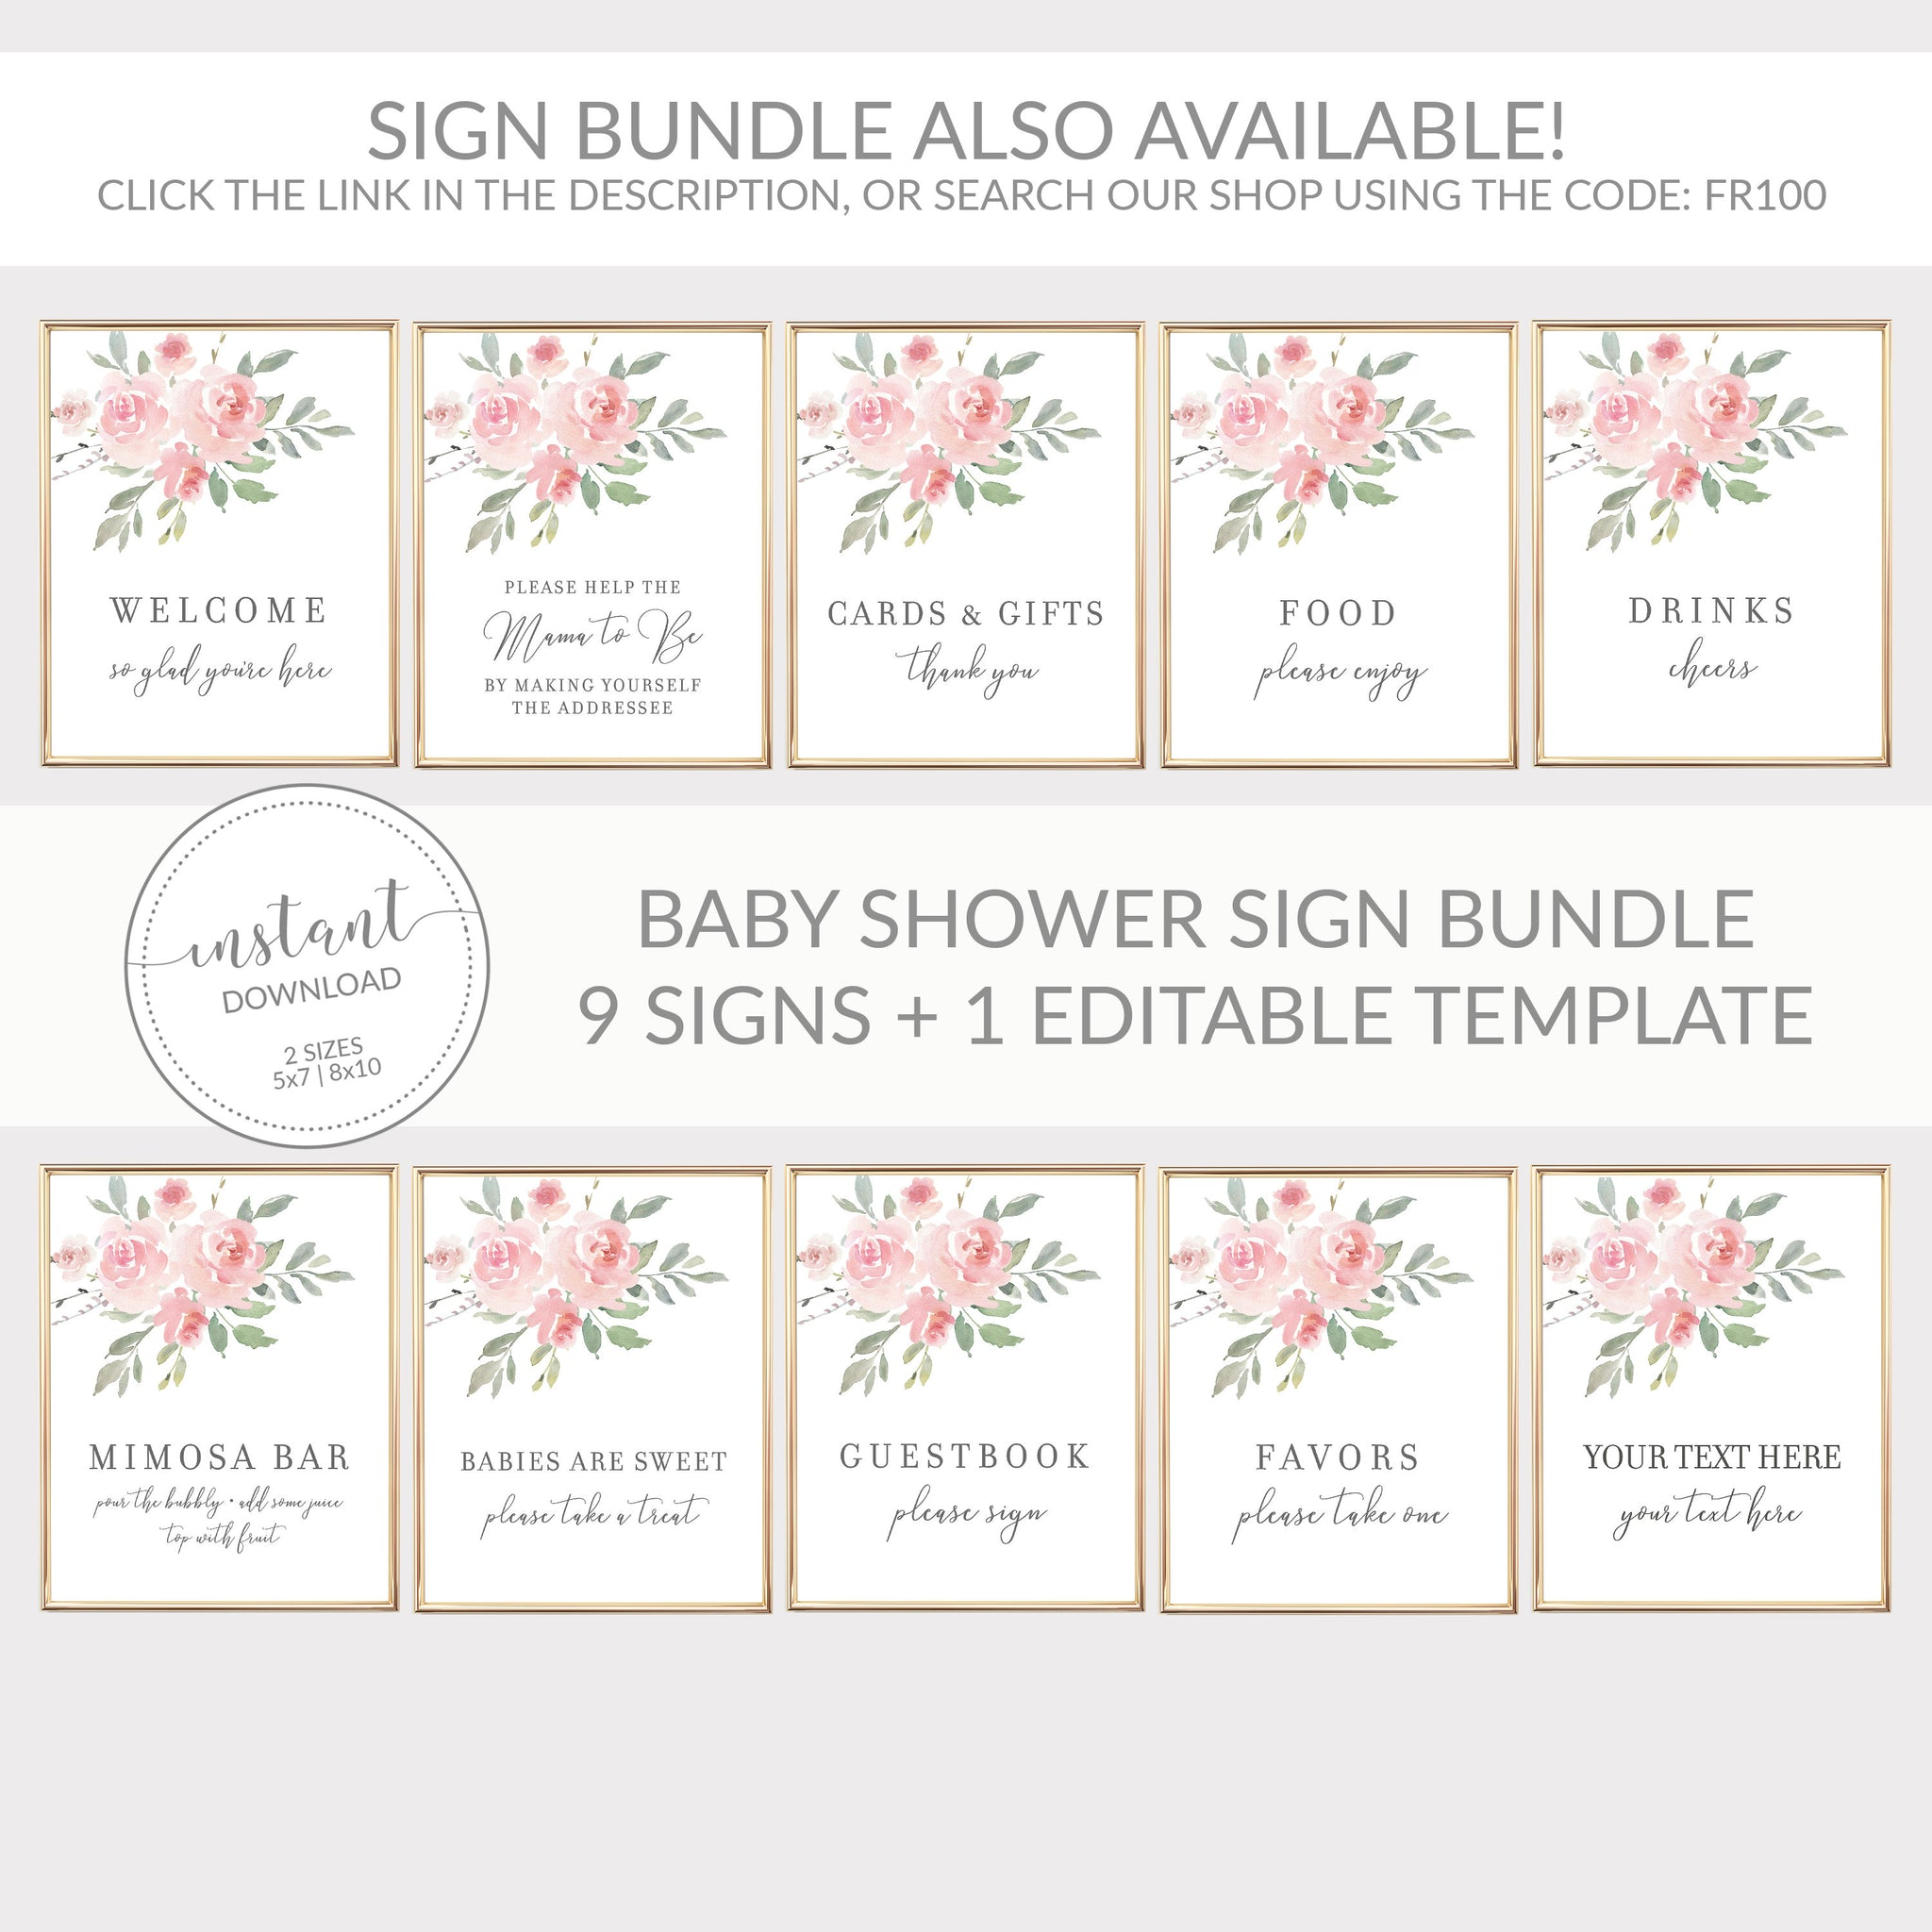 Blush Pink Floral Cards and Gifts Printable Sign INSTANT DOWNLOAD, Bridal Shower, Baby Shower, Wedding Decorations and Supplies - FR100